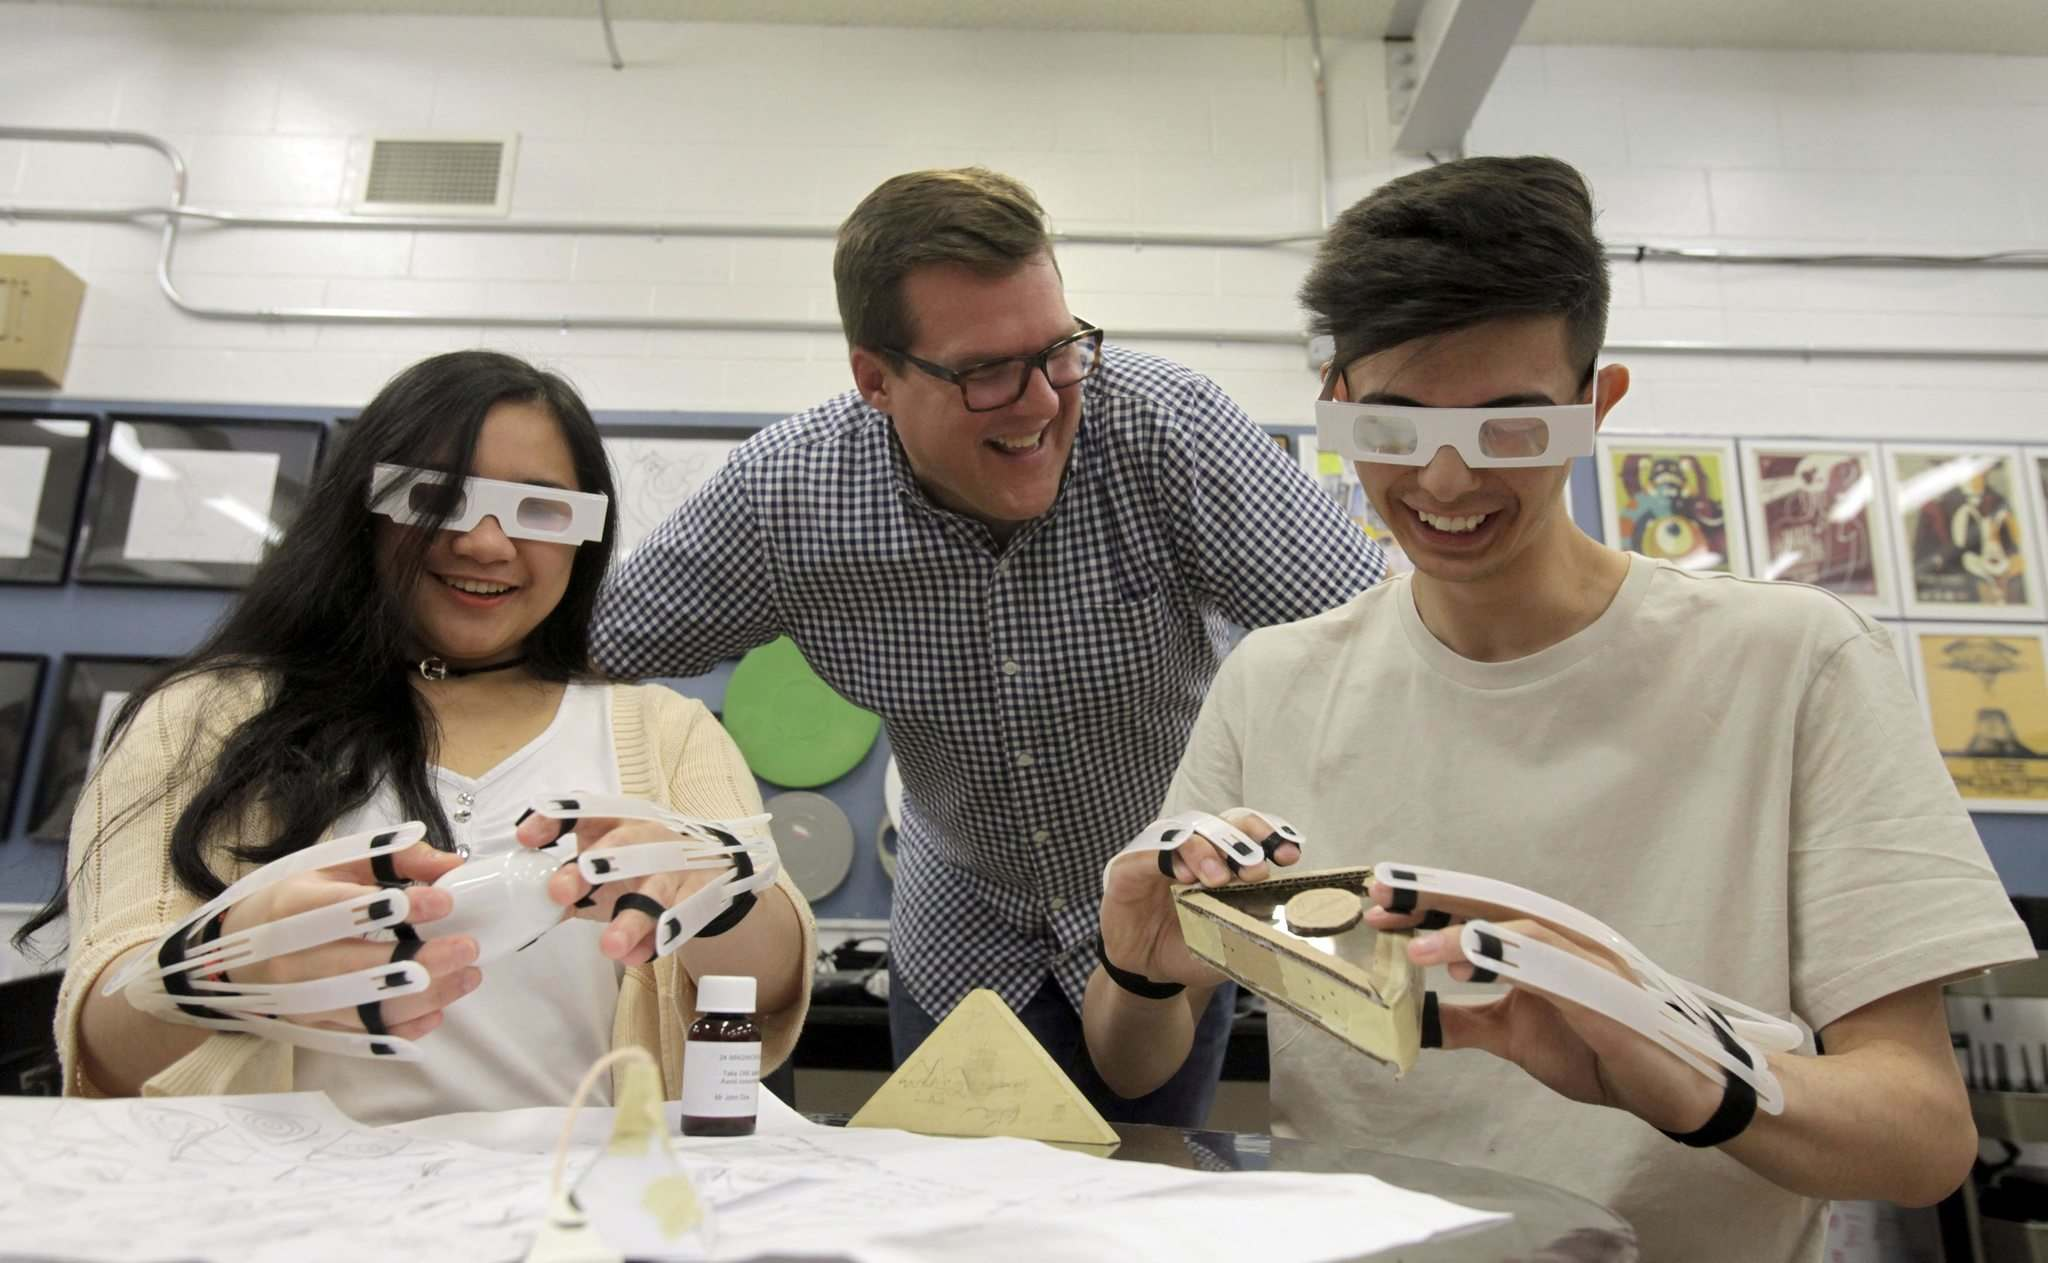 ERIK PINDERA / WINNIPEG FREE PRESS</p><p>Sisler High School teacher Jamie Leduc watches Denise Diosana (left) and Marcelo Aiello as they try to grab salt shakers with vision-impairing glasses and dexterity-reducing gloves.</p>